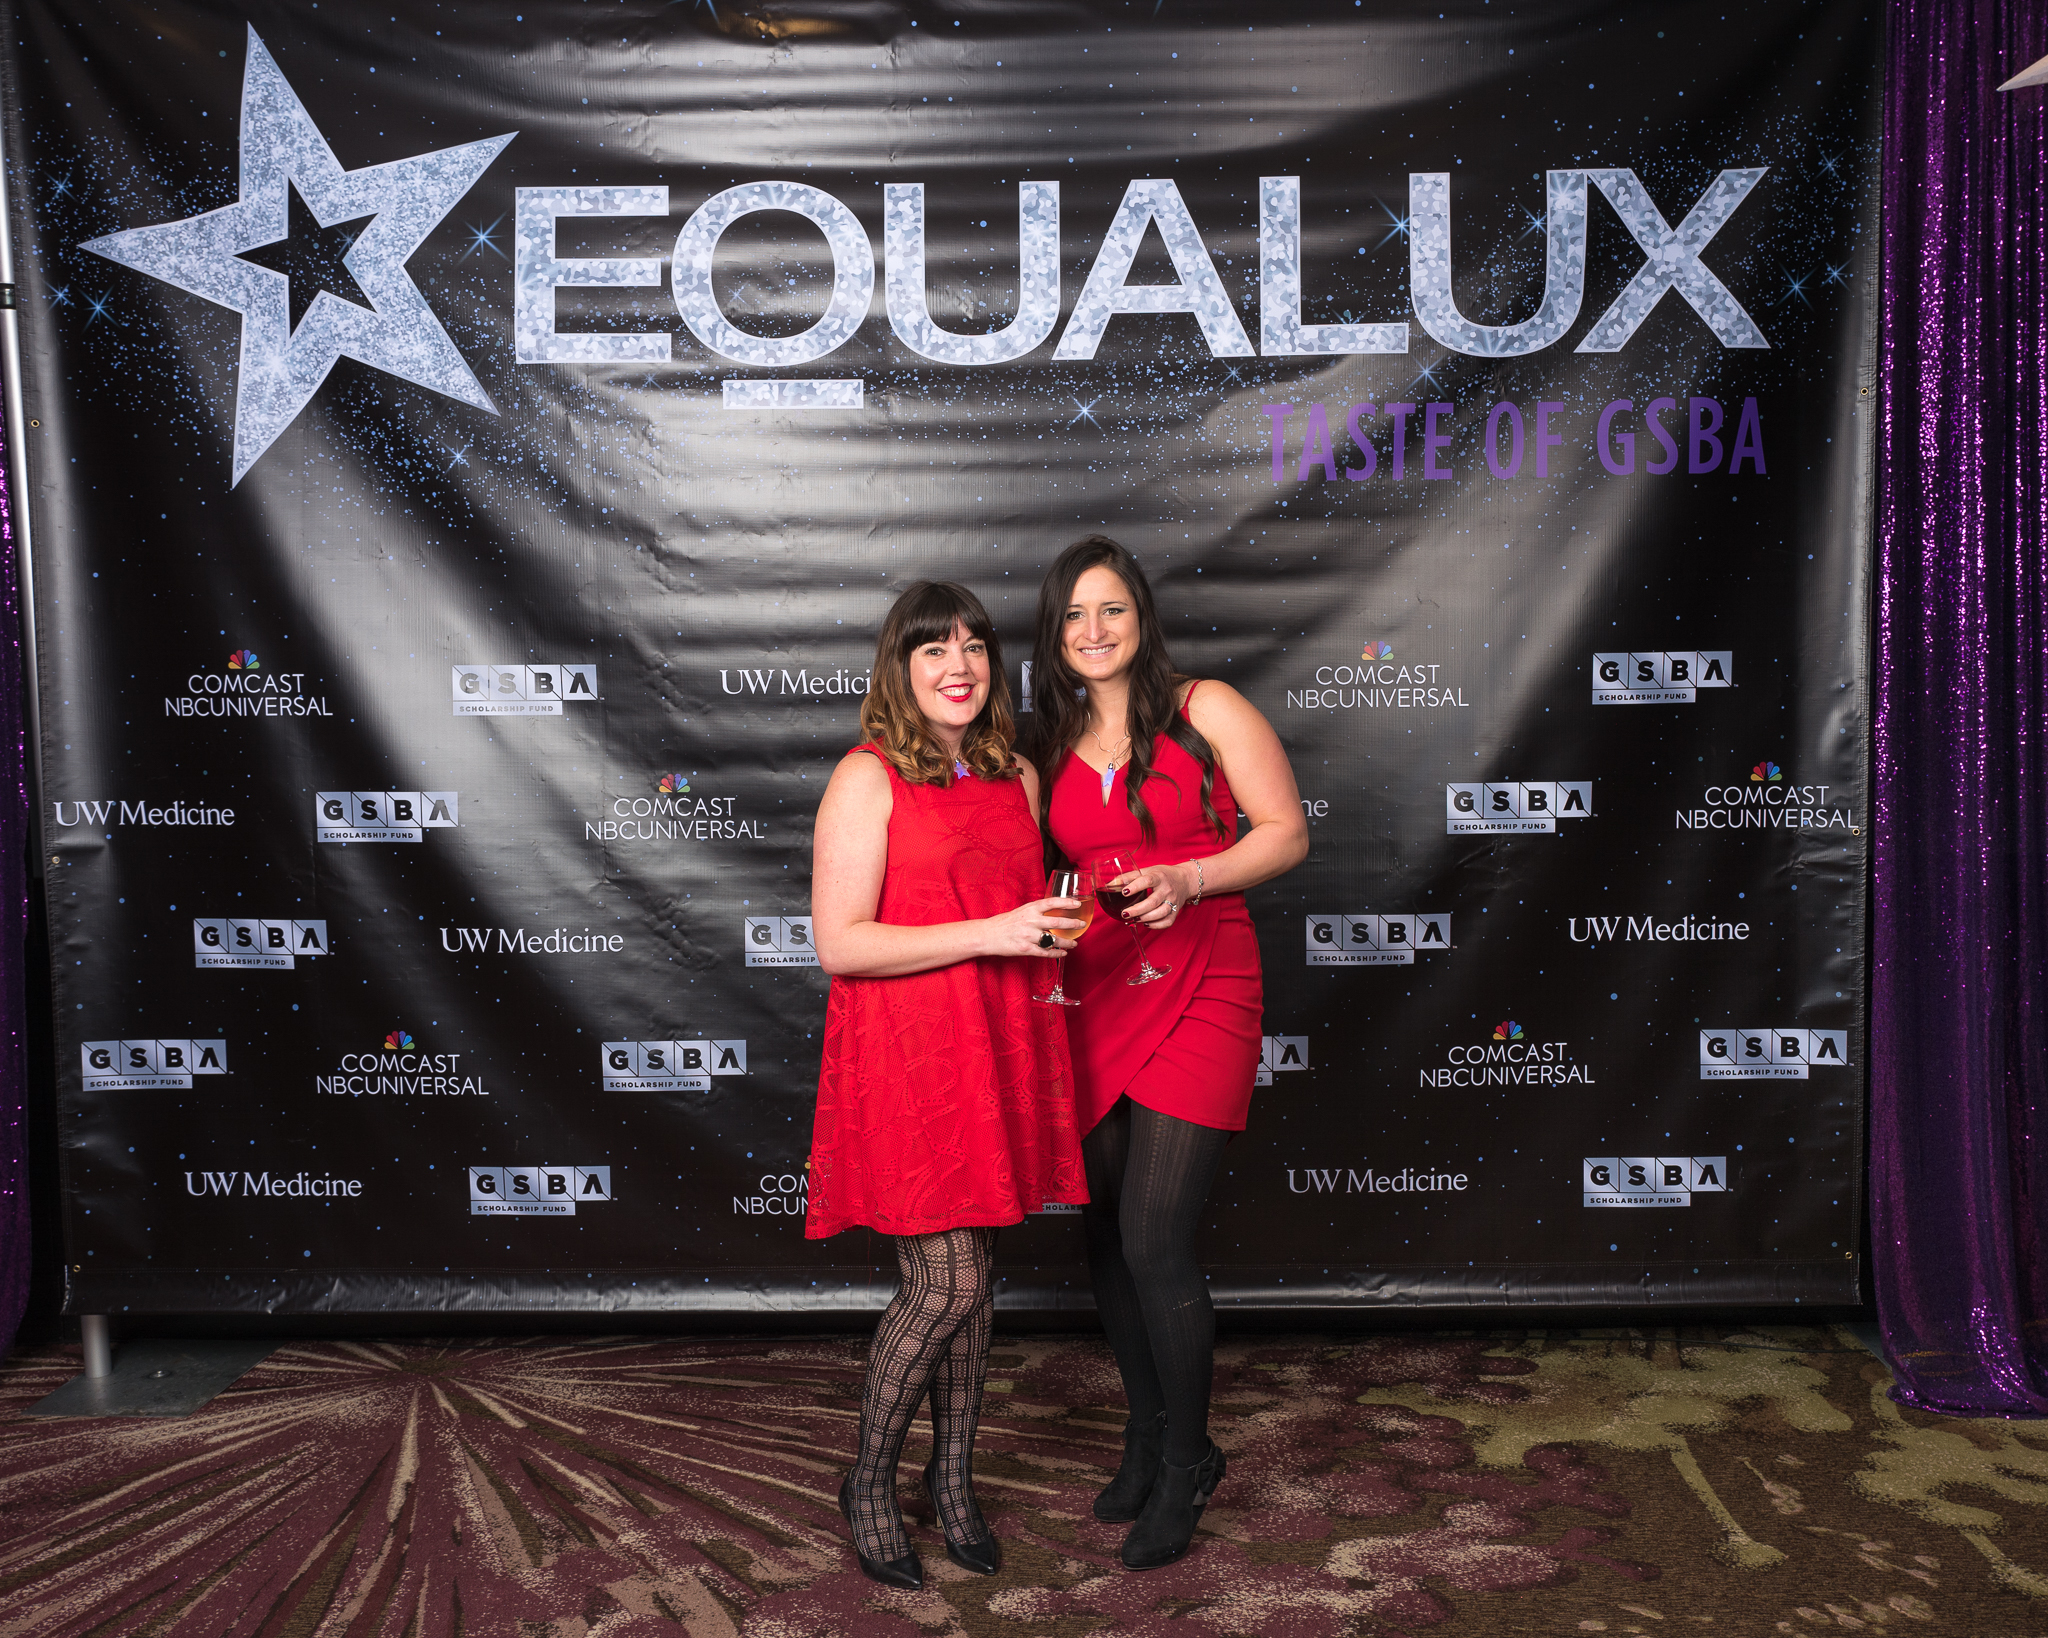 111718_GSBA EQUALUX at The Westin Seattle (Credit- Nate Gowdy)-39.jpg